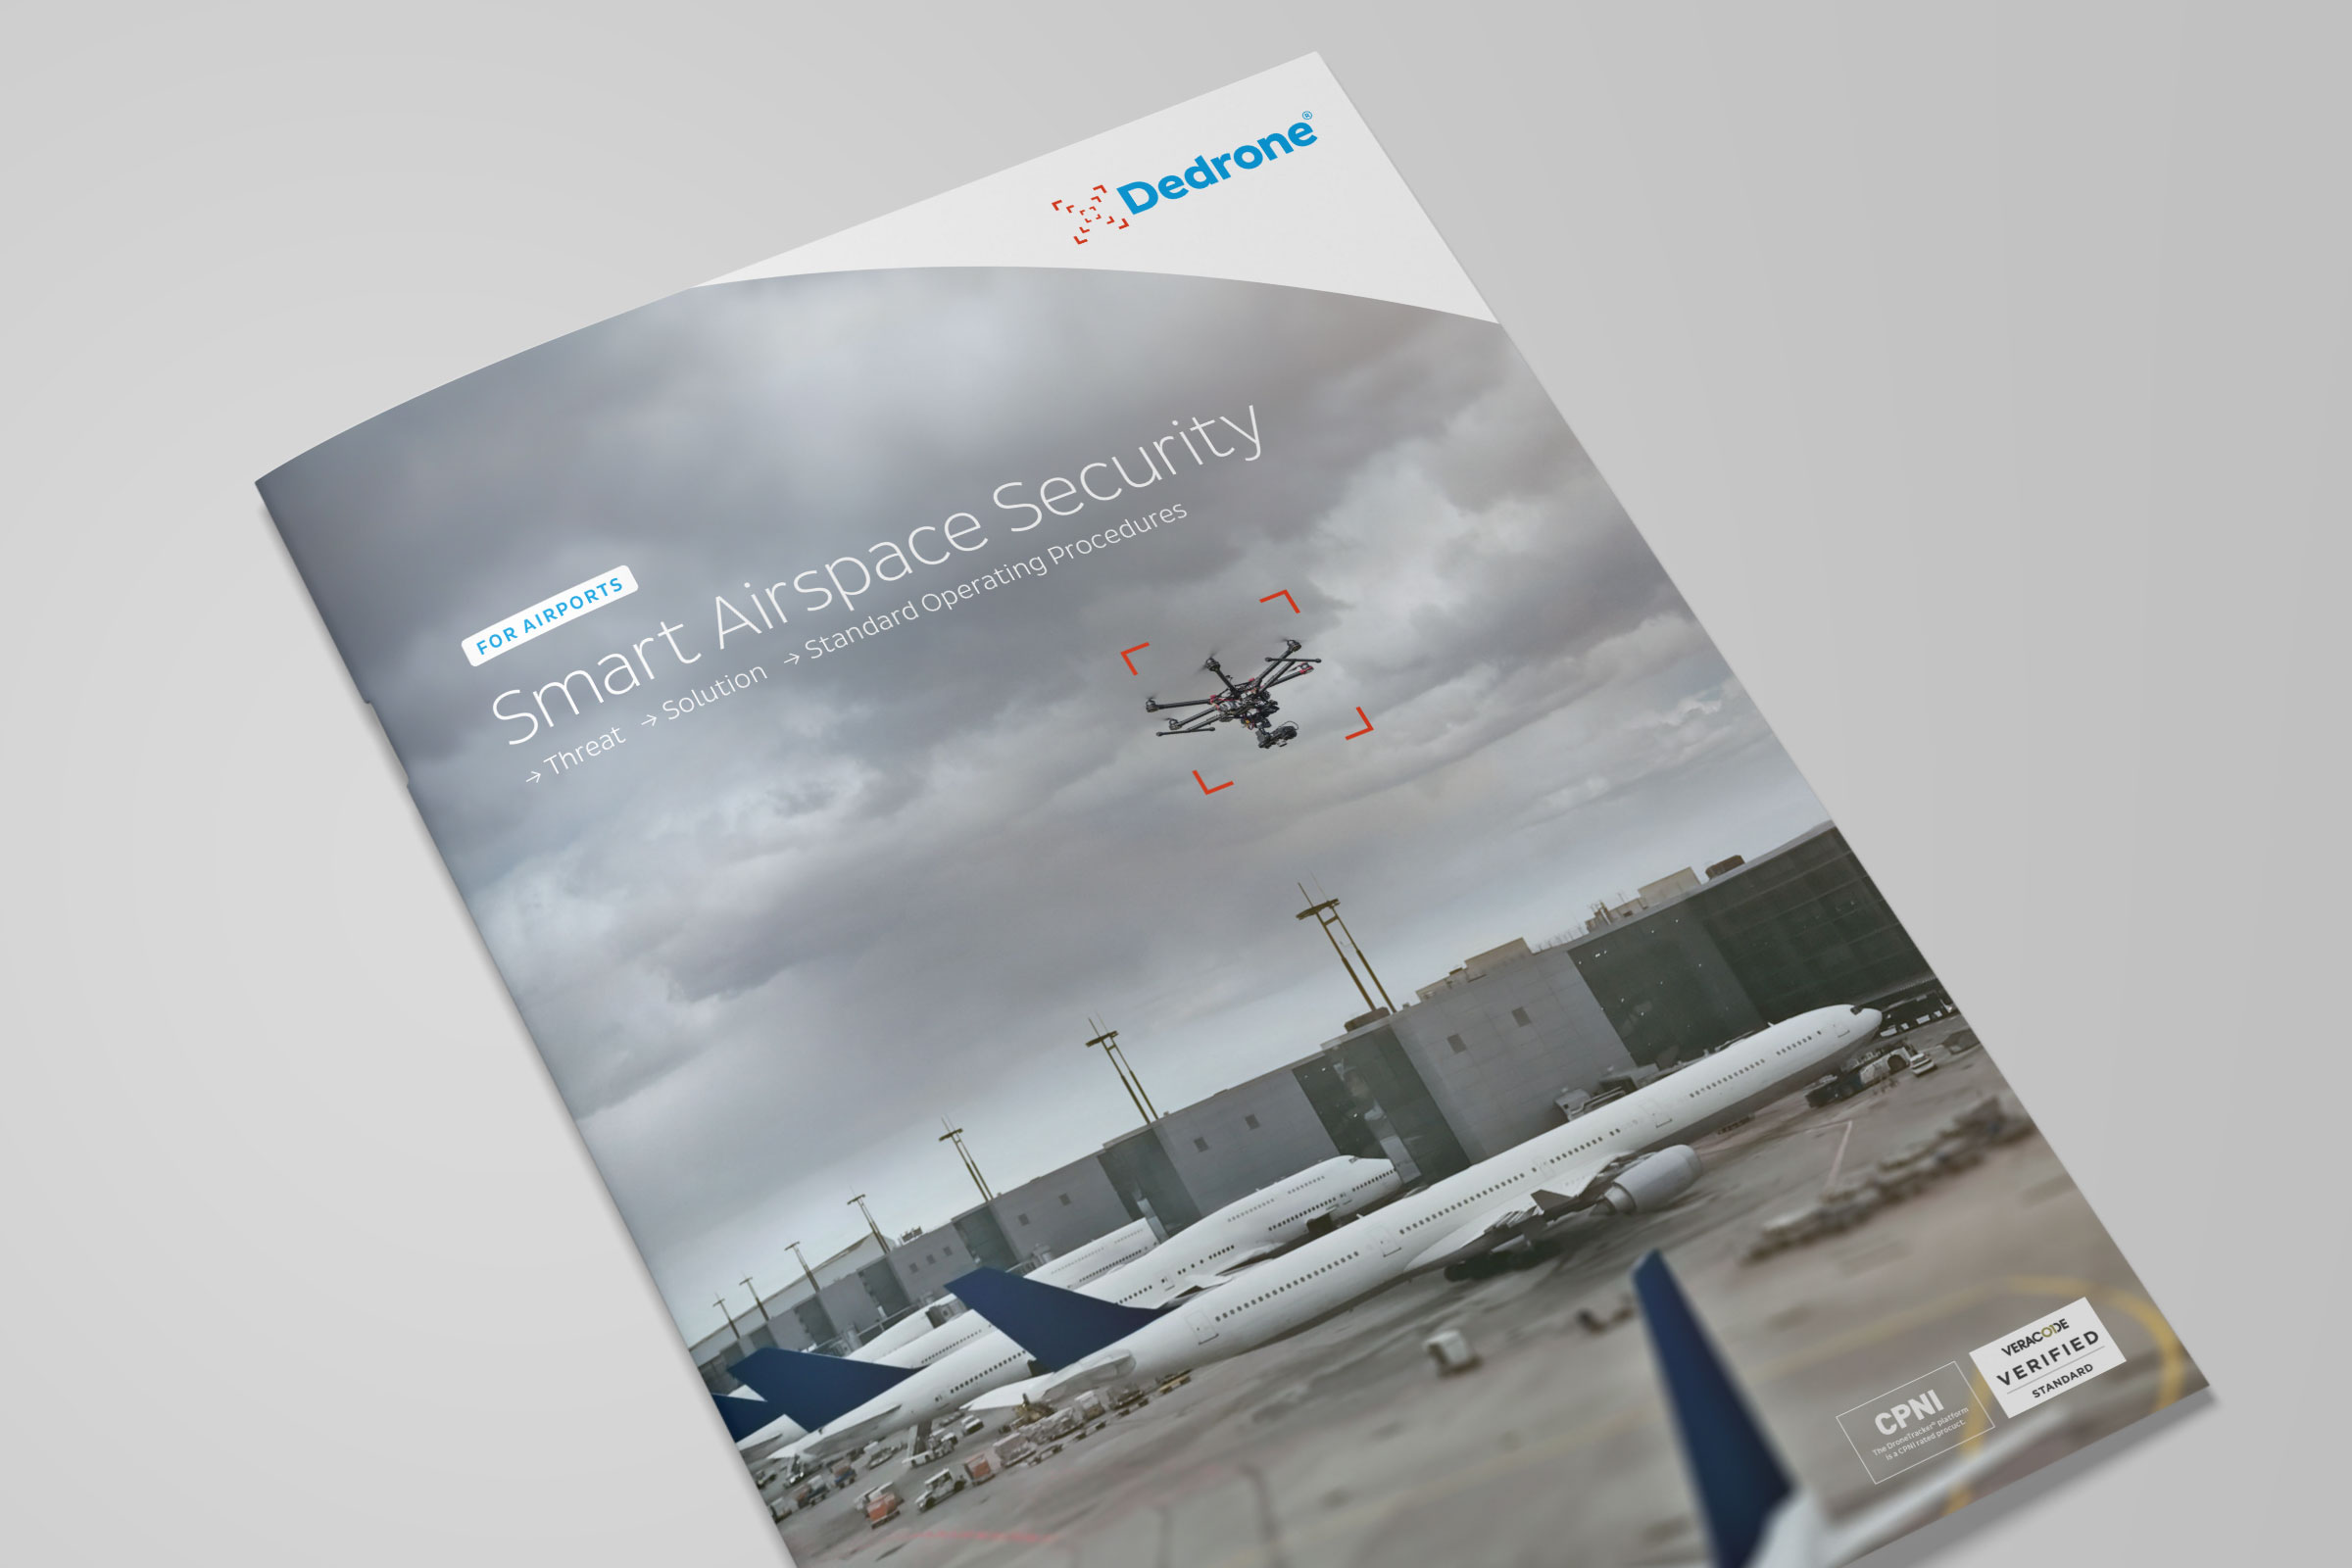 dedrone-flyer-cover-airports